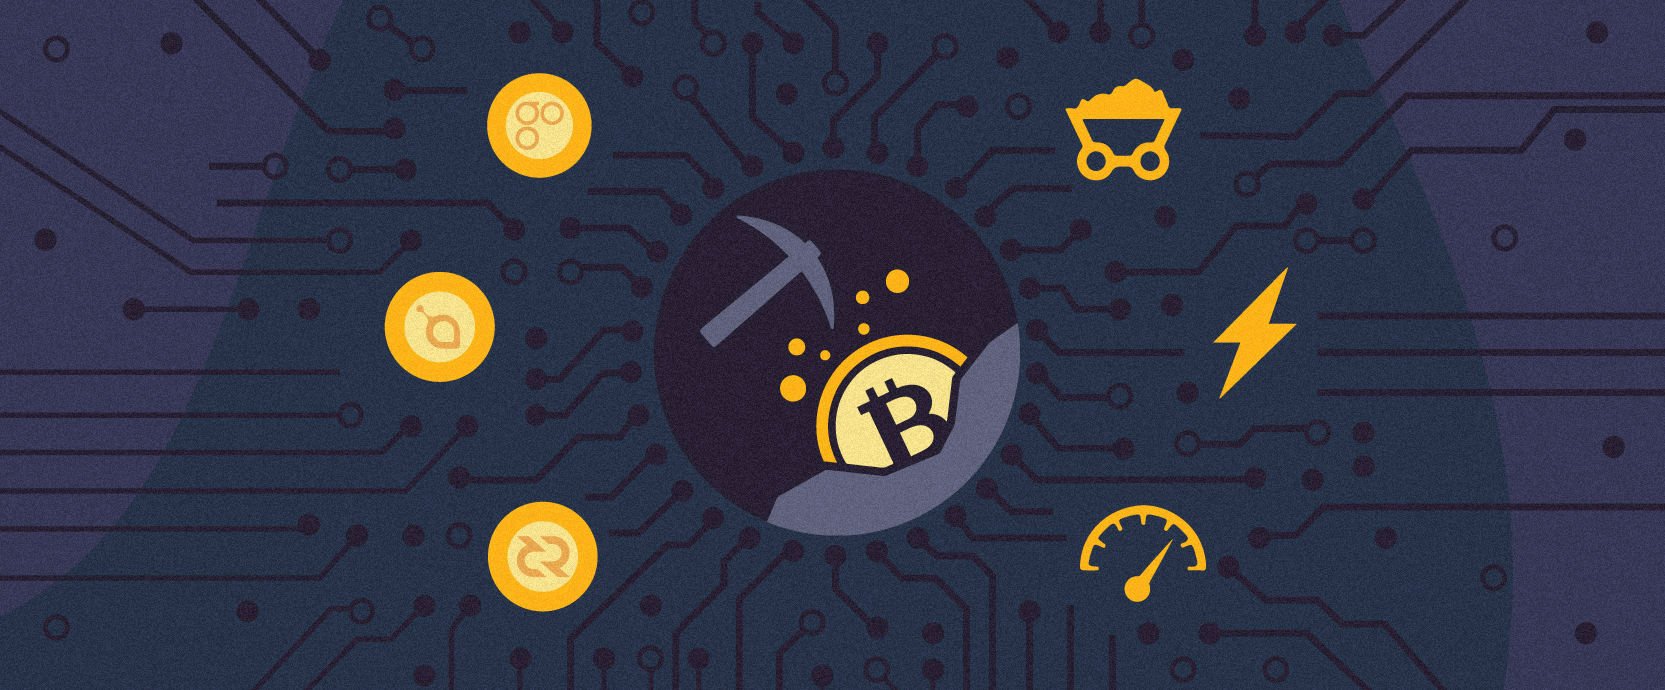 How to receive cryptocurrency